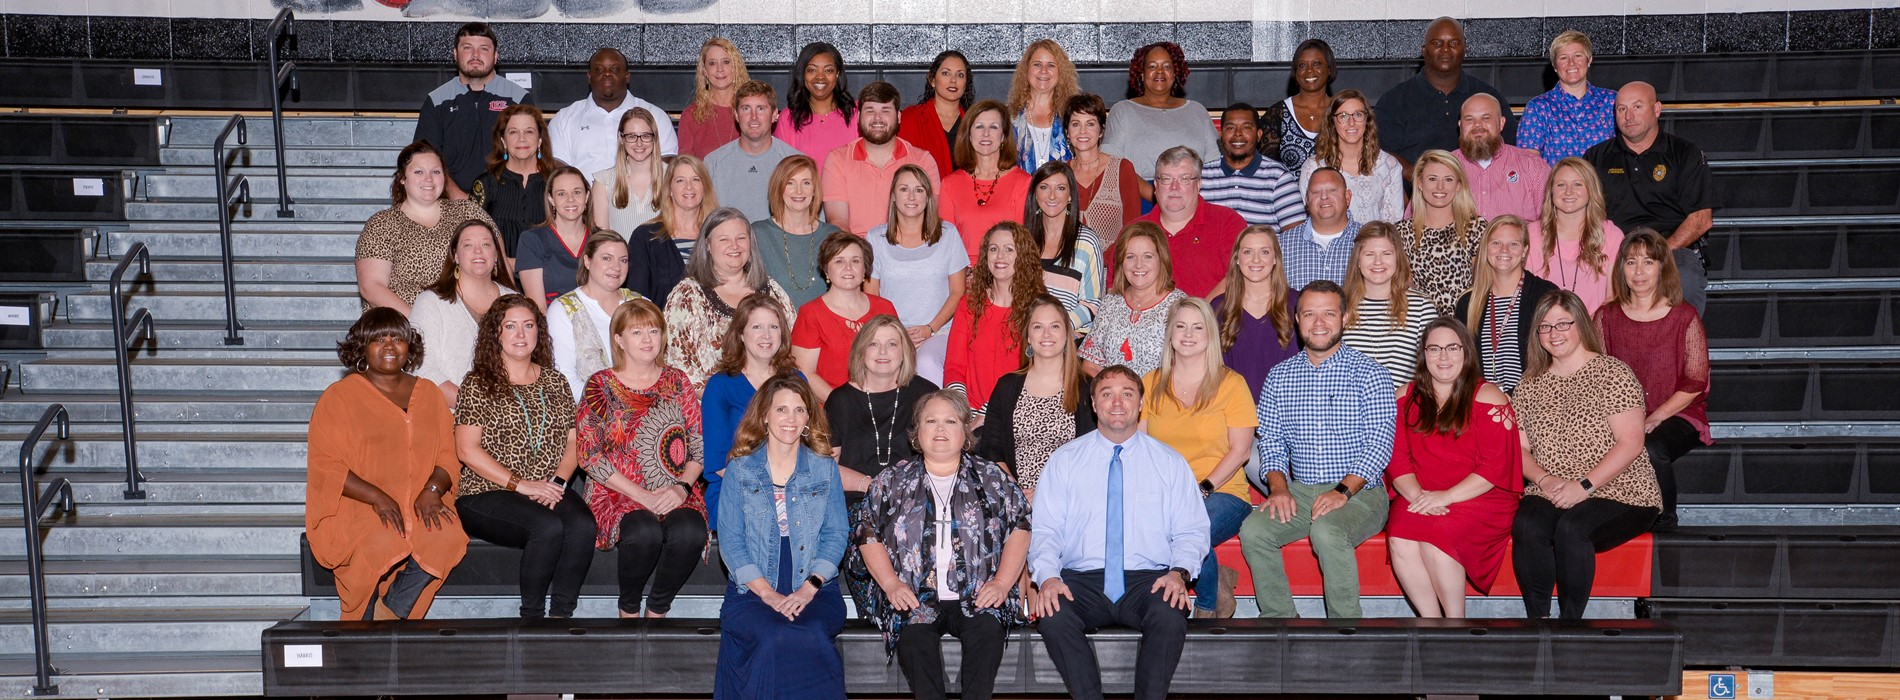 LCMS-East Faculty & Staff